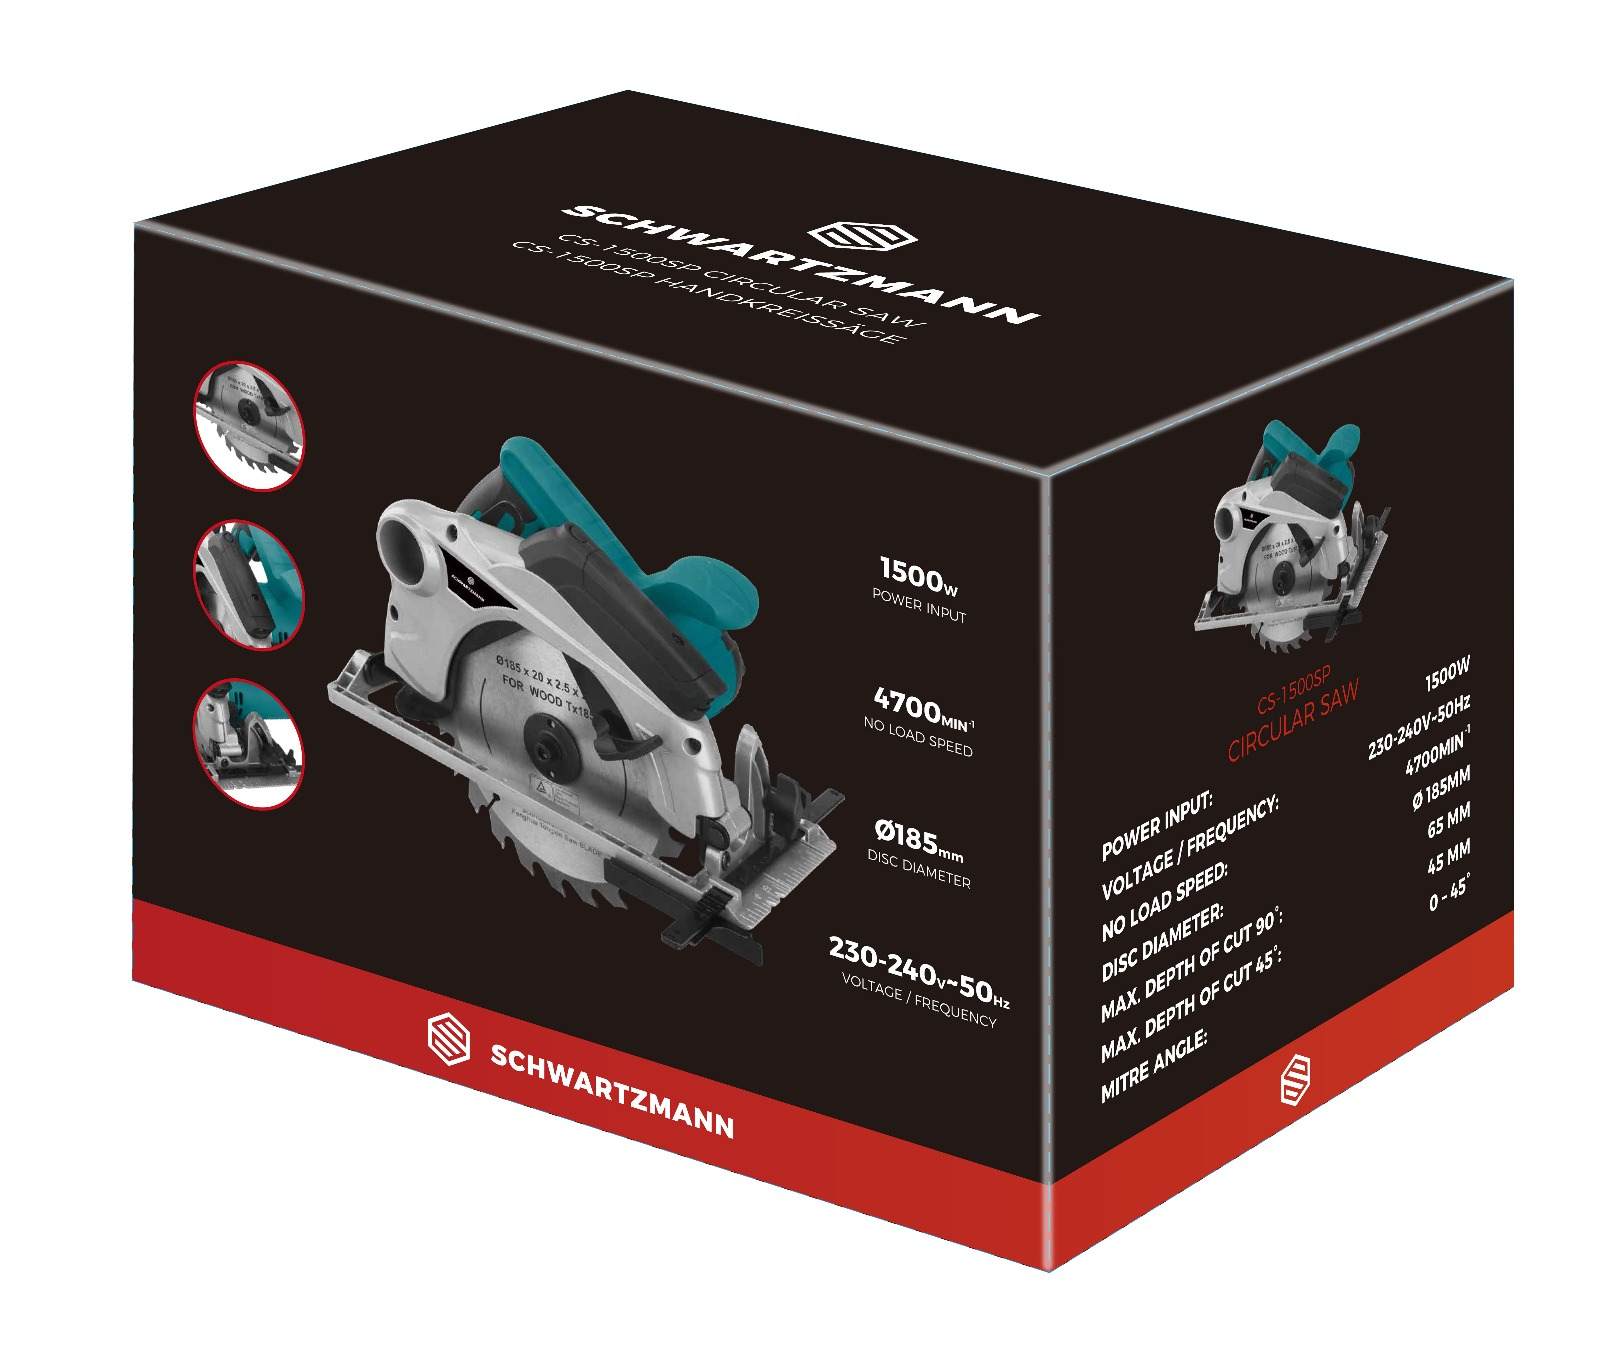 Lot 18104 - V Brand New 1500w CS1500SP Circular Saw With laser Guide - Dust Extraction - 185mm Disc Diameter -